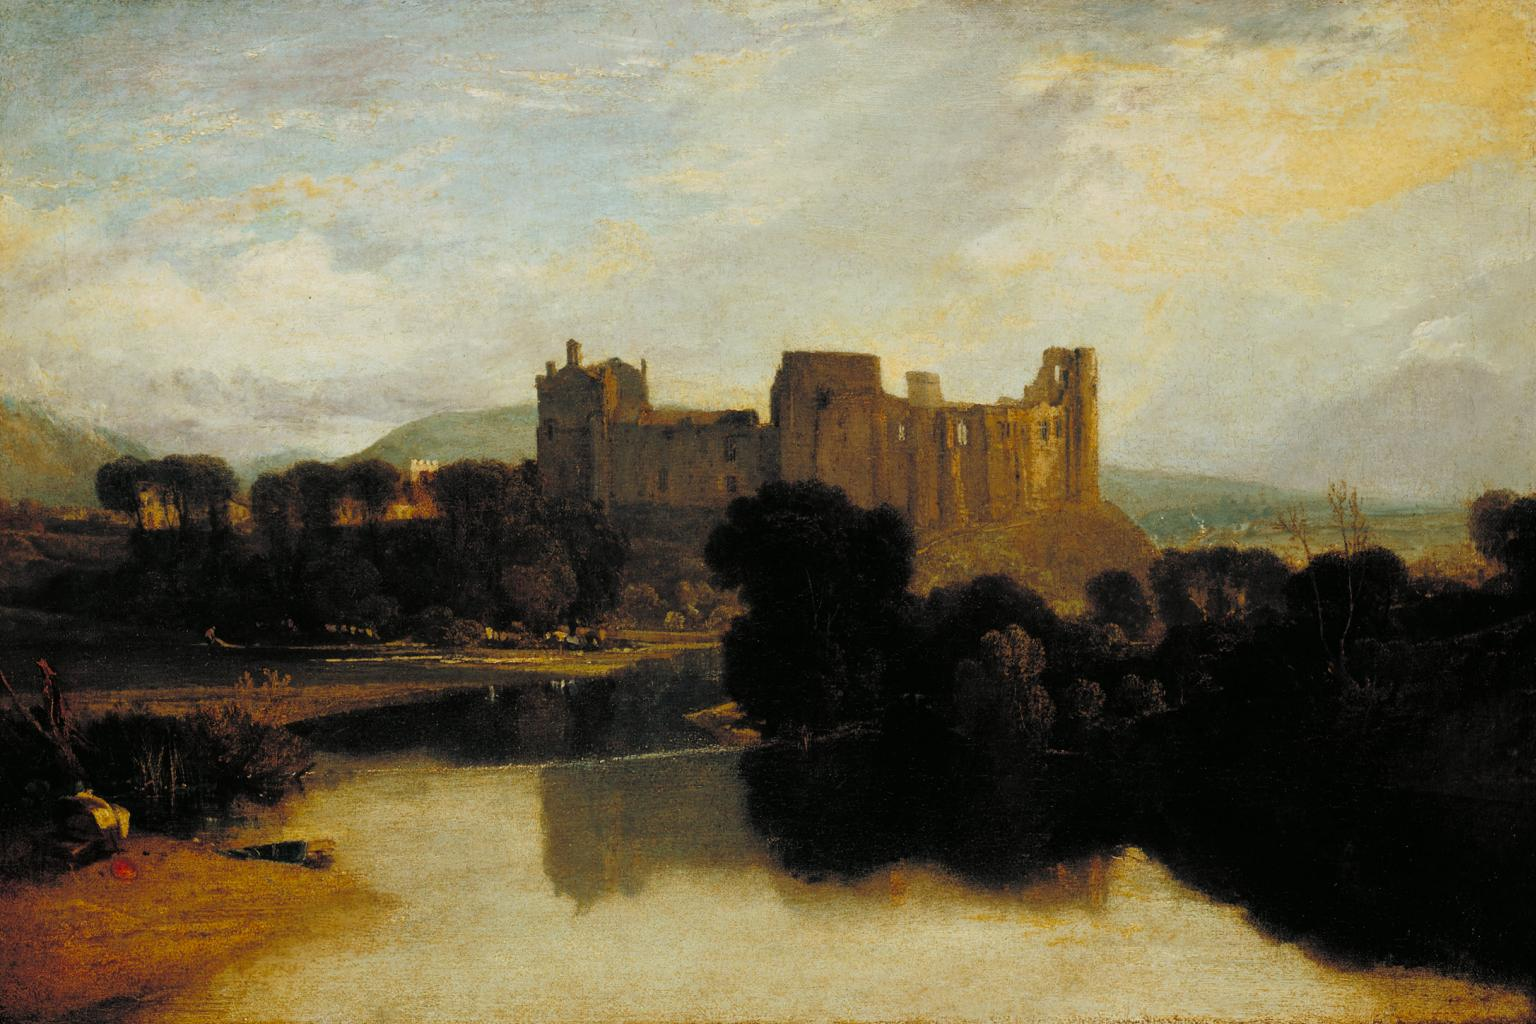 Cockermouth Castle exhibited 1810 by Joseph Mallord William Turner 1775-1851